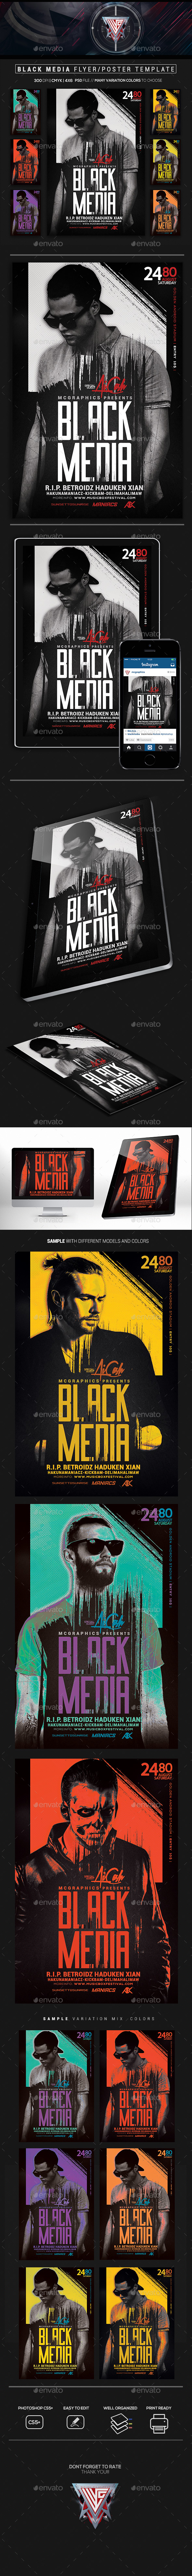 Black Media Flyer/Poste Template - Flyers Print Templates